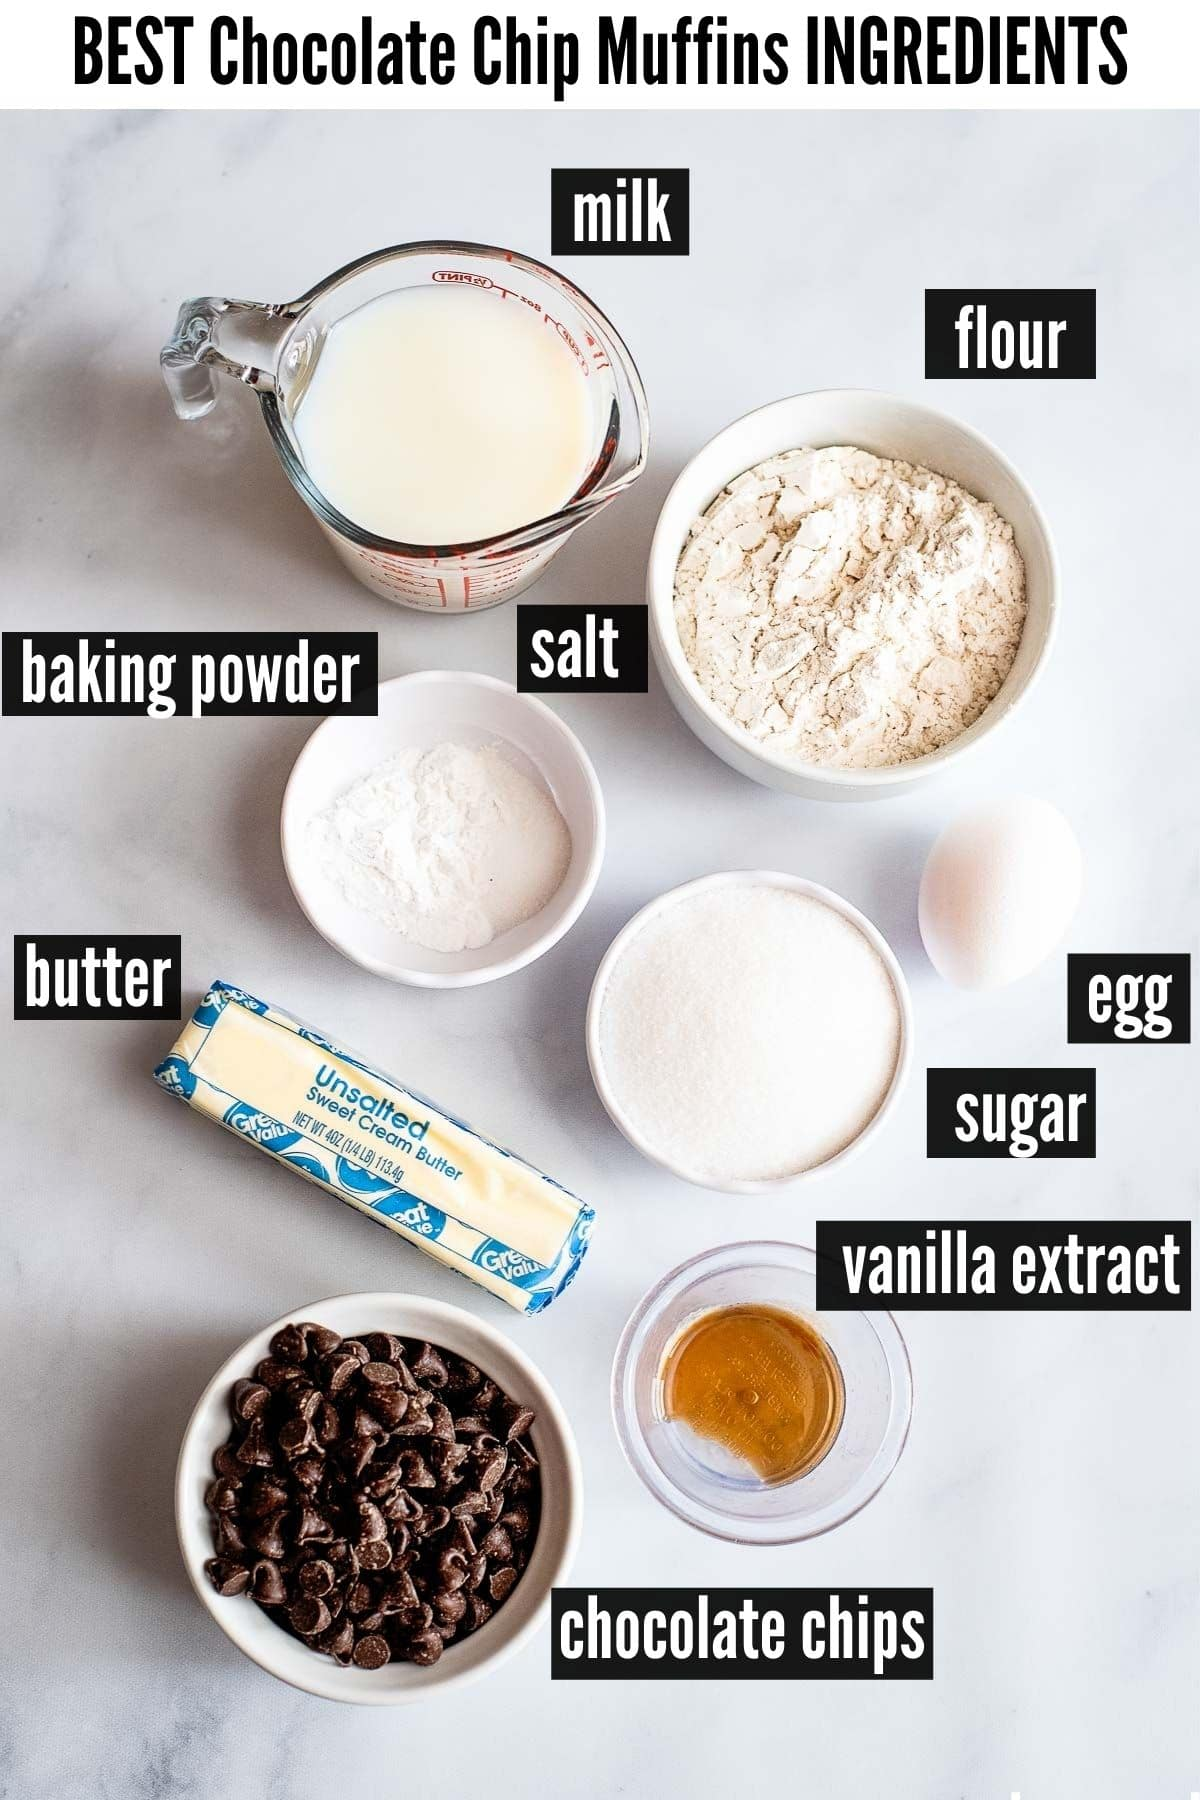 chocolate chip muffins ingredients labelled